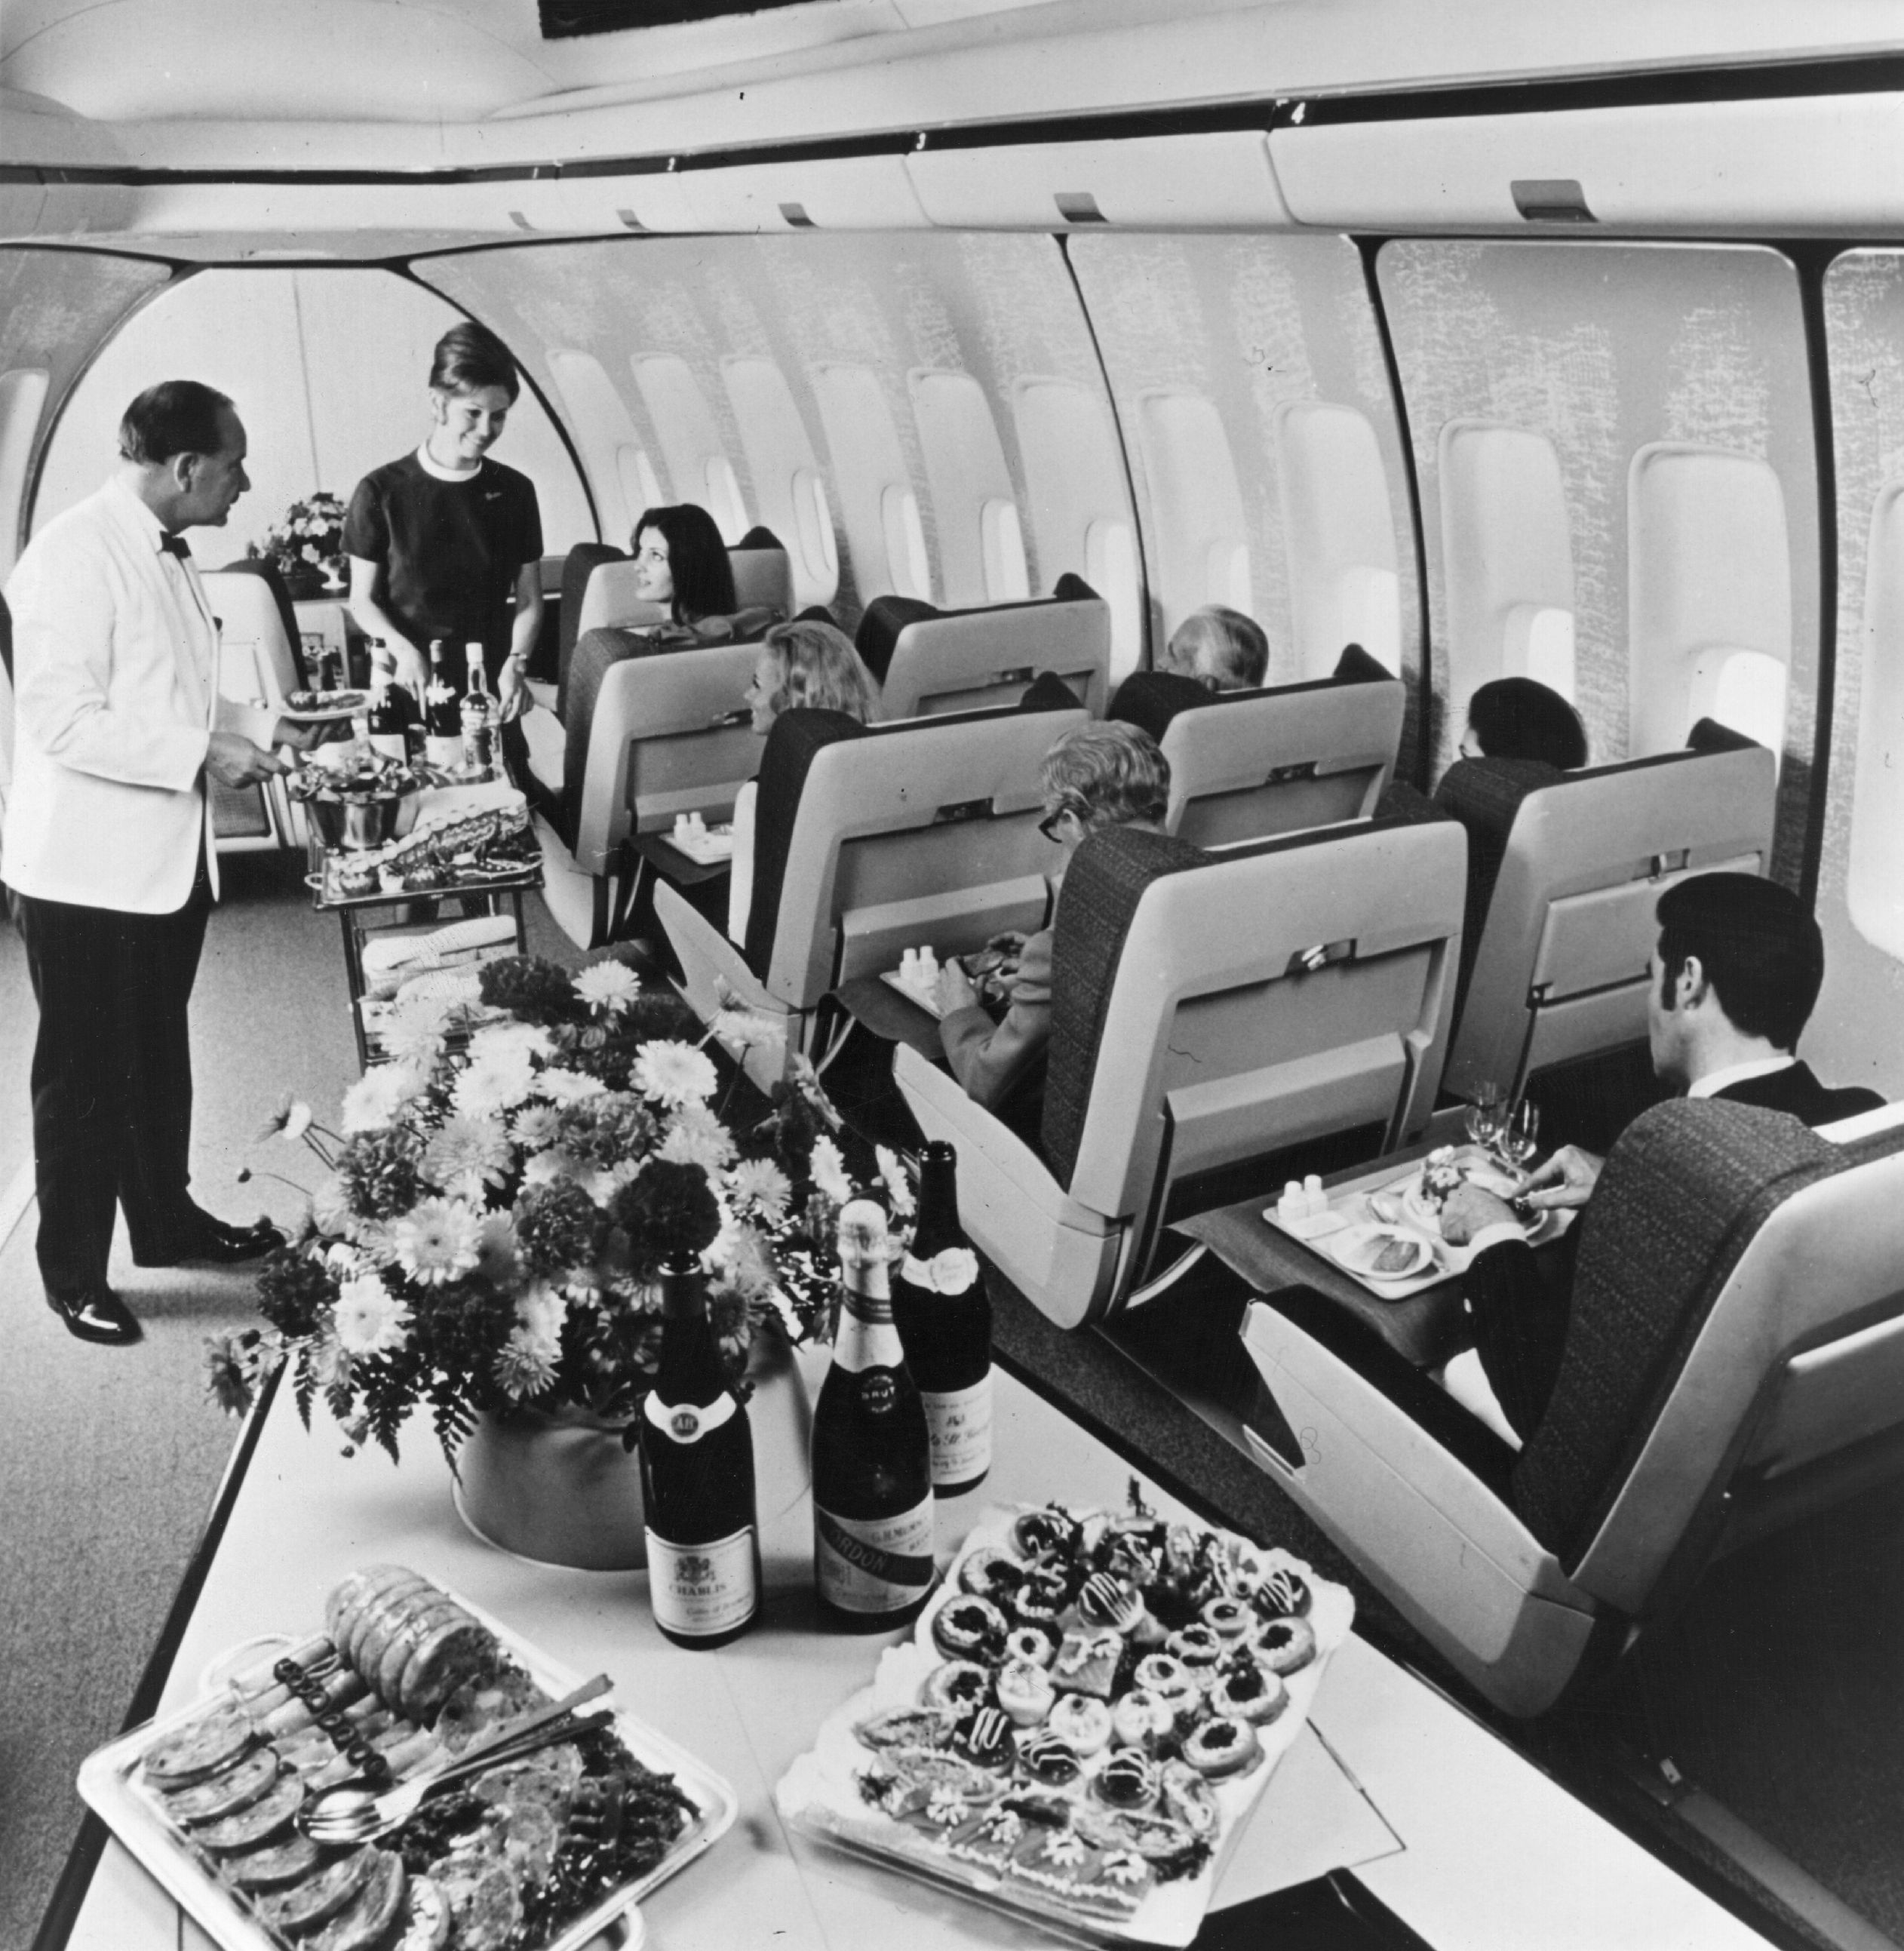 Cutaway of a pan am boeing 377 stratocruiser image from chris sloan - The Golden Age Of Air Travel This 1970 Image Shows First Class Passengers In